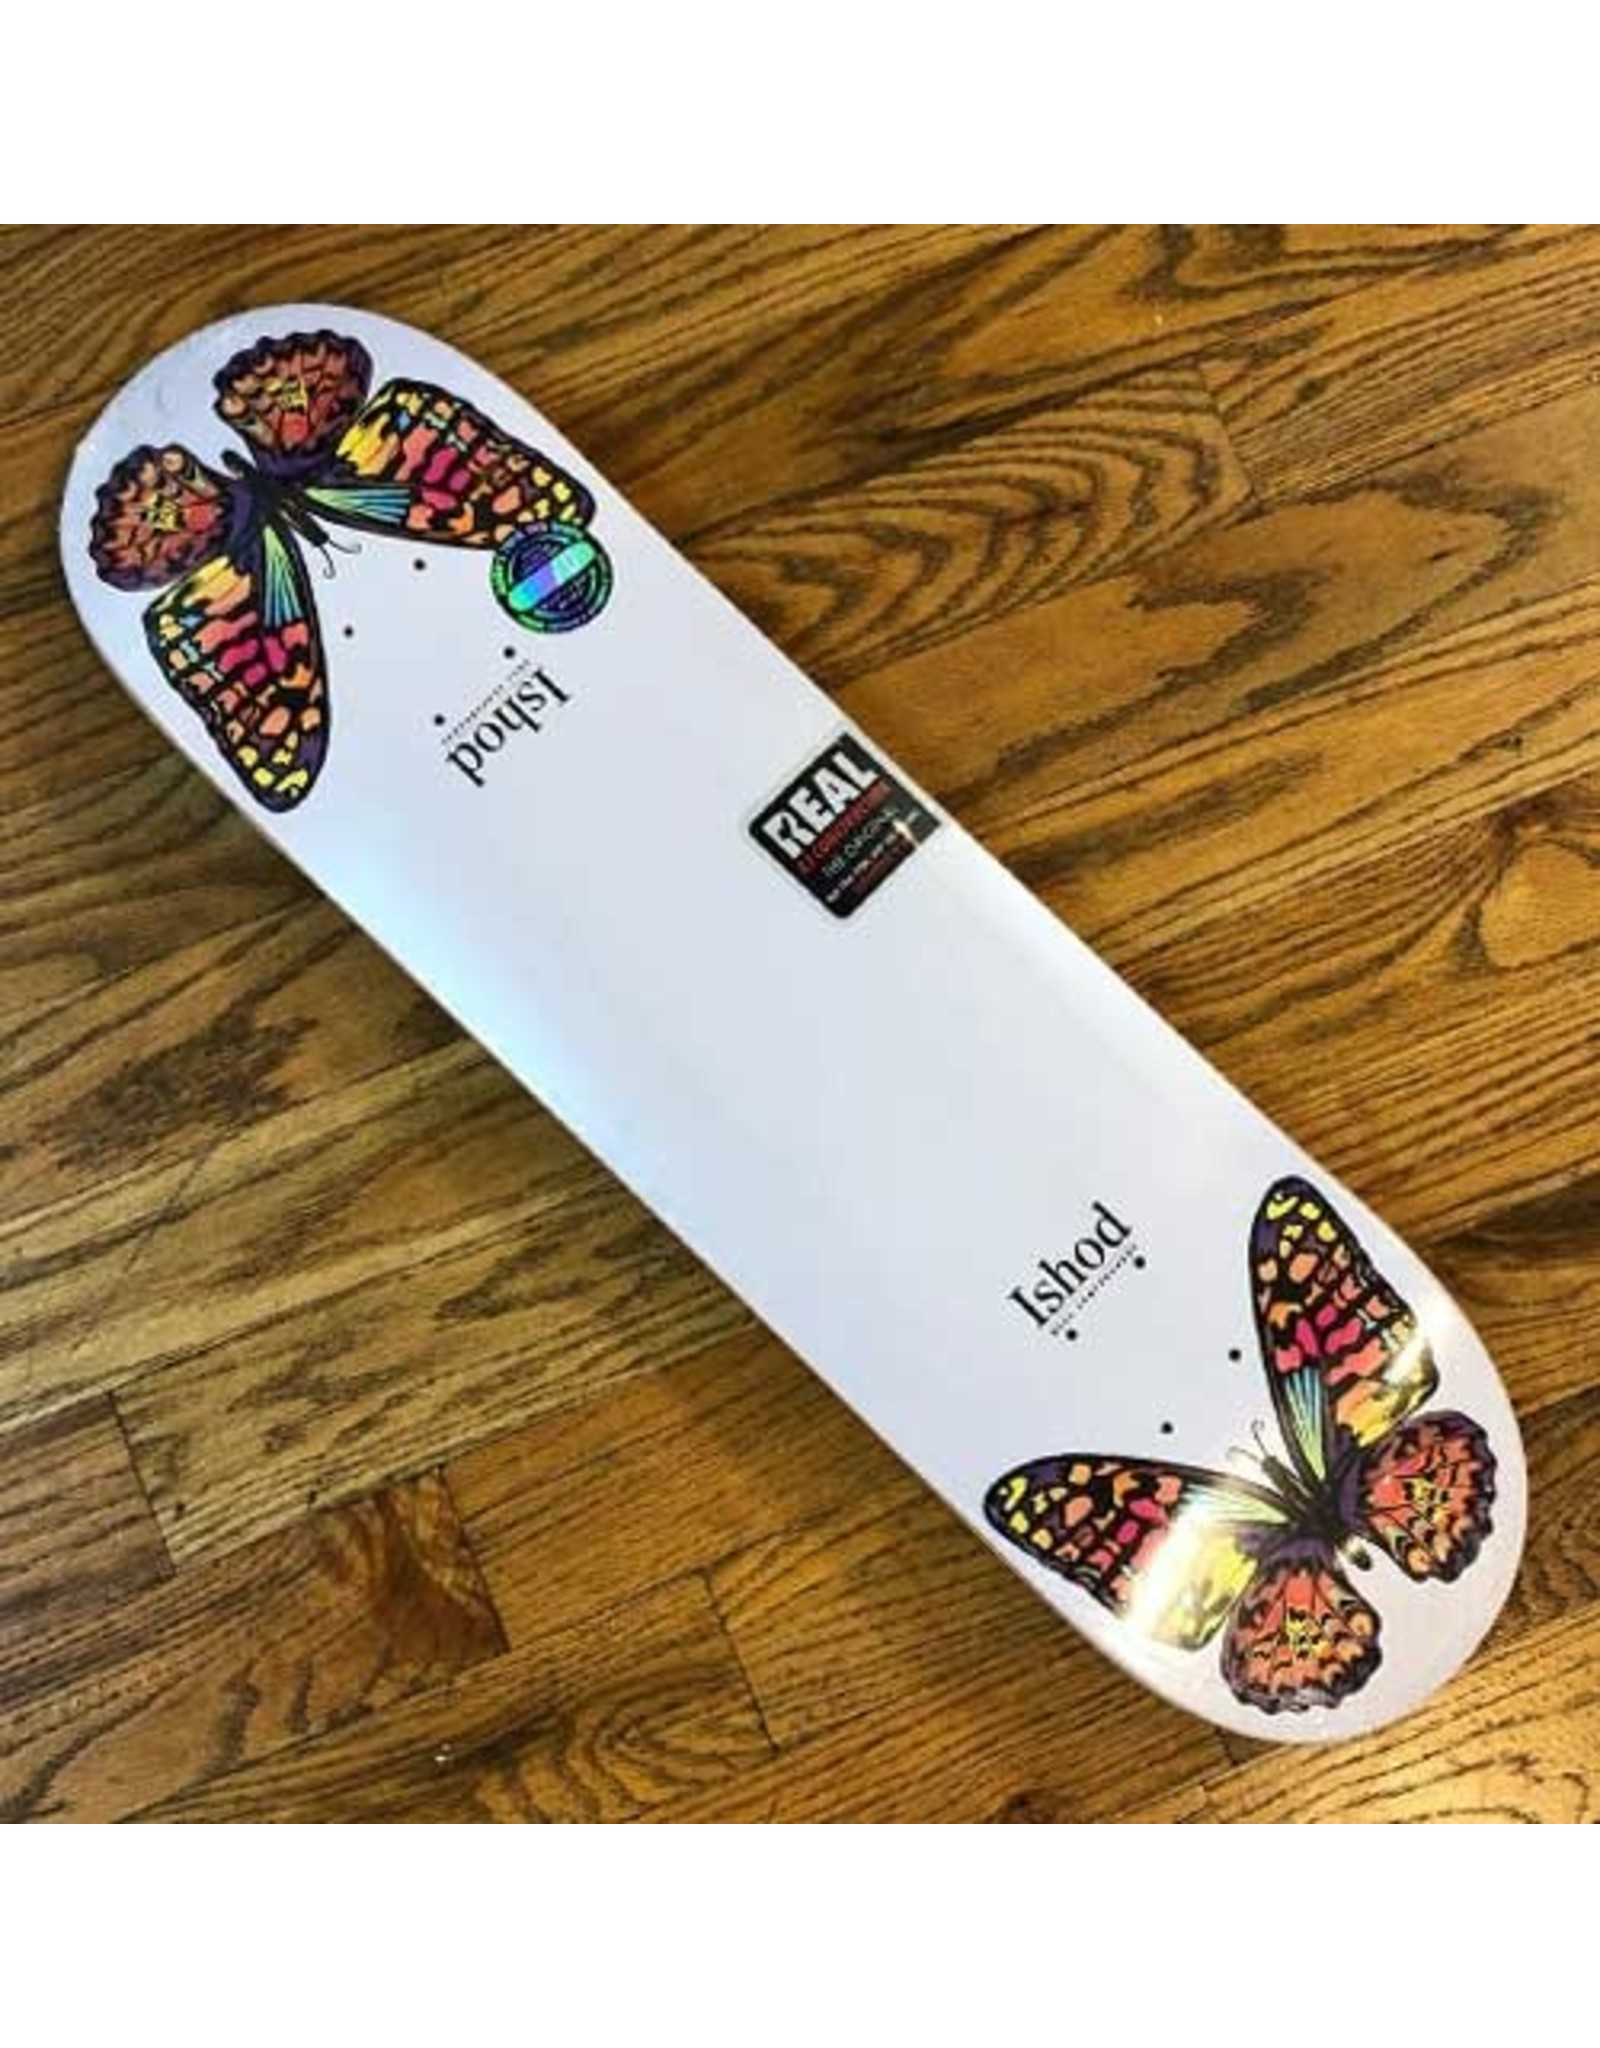 Real Deck Wair Monarch 8.38x31.75 Twin Tail SLICK